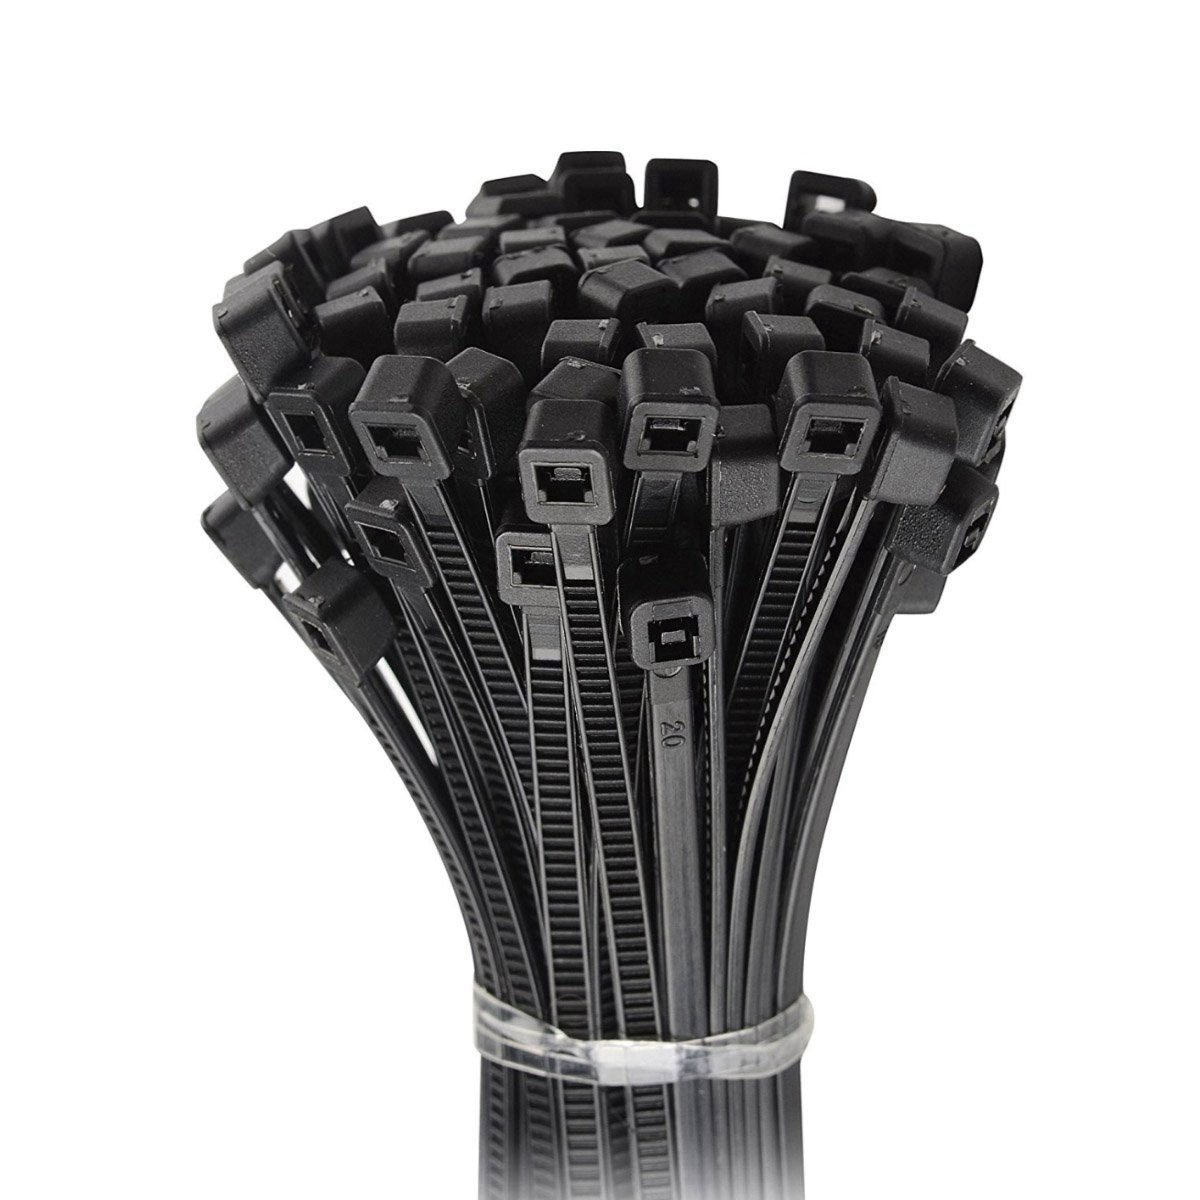 Besmelody Nylon Cable Ties 8mm x 300mm // 0.3 x 12 inch Ultra Strong Plastic Wire Wraps UV Resistant 250pcs -Black Self-Locking Cable Ties,